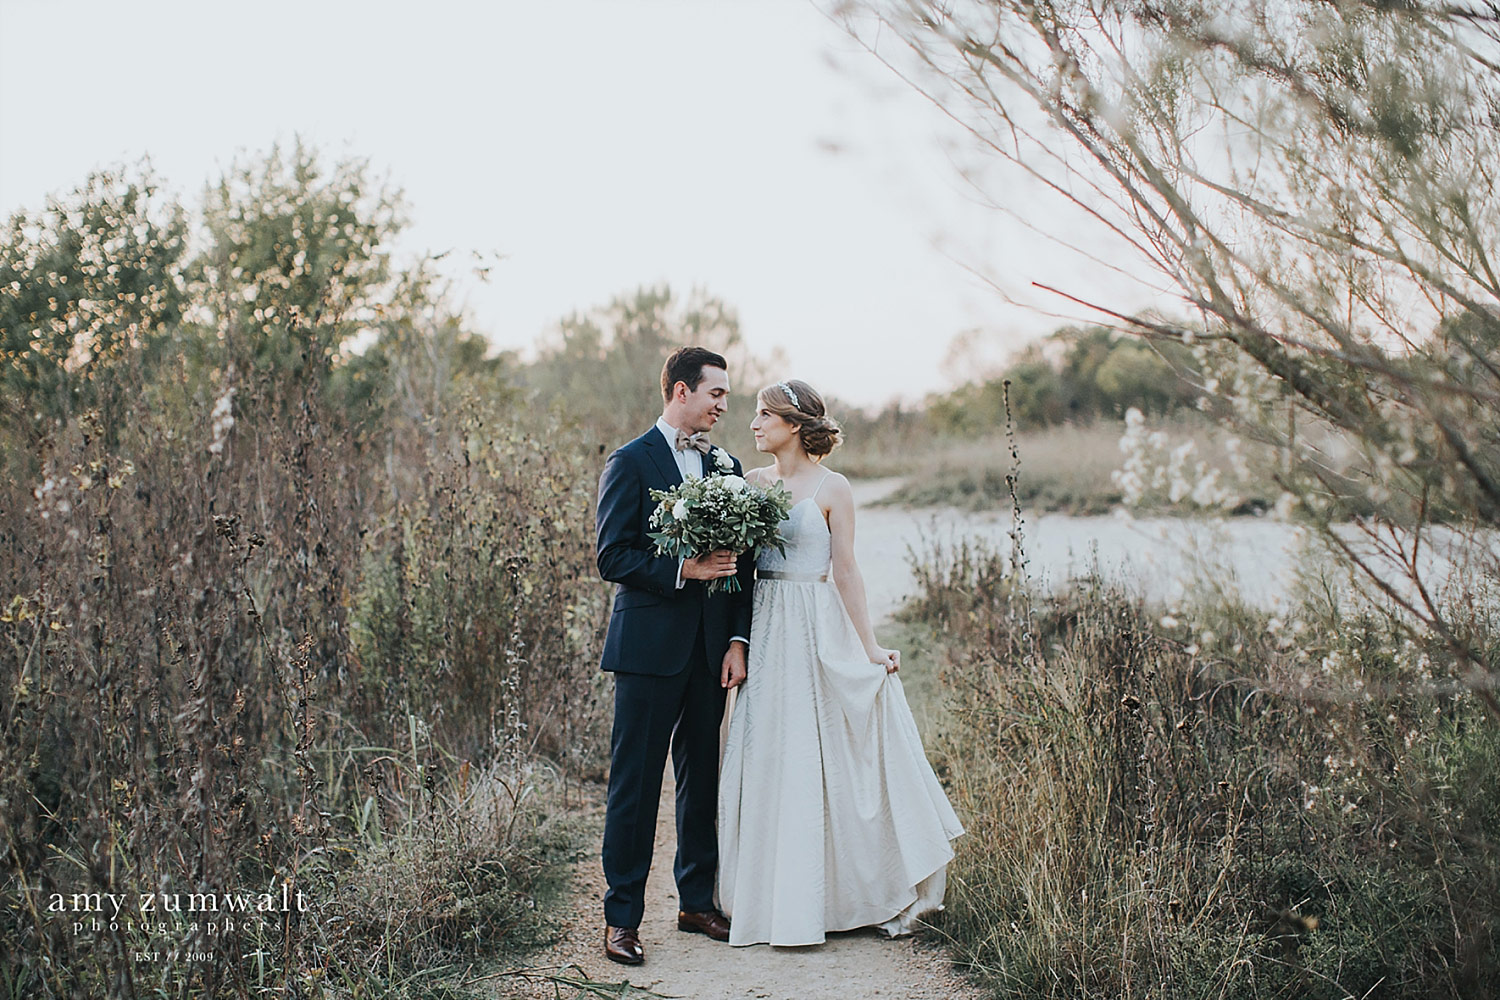 Bride and groom at Trinity River Audubon Center in the fall with tall brown grass